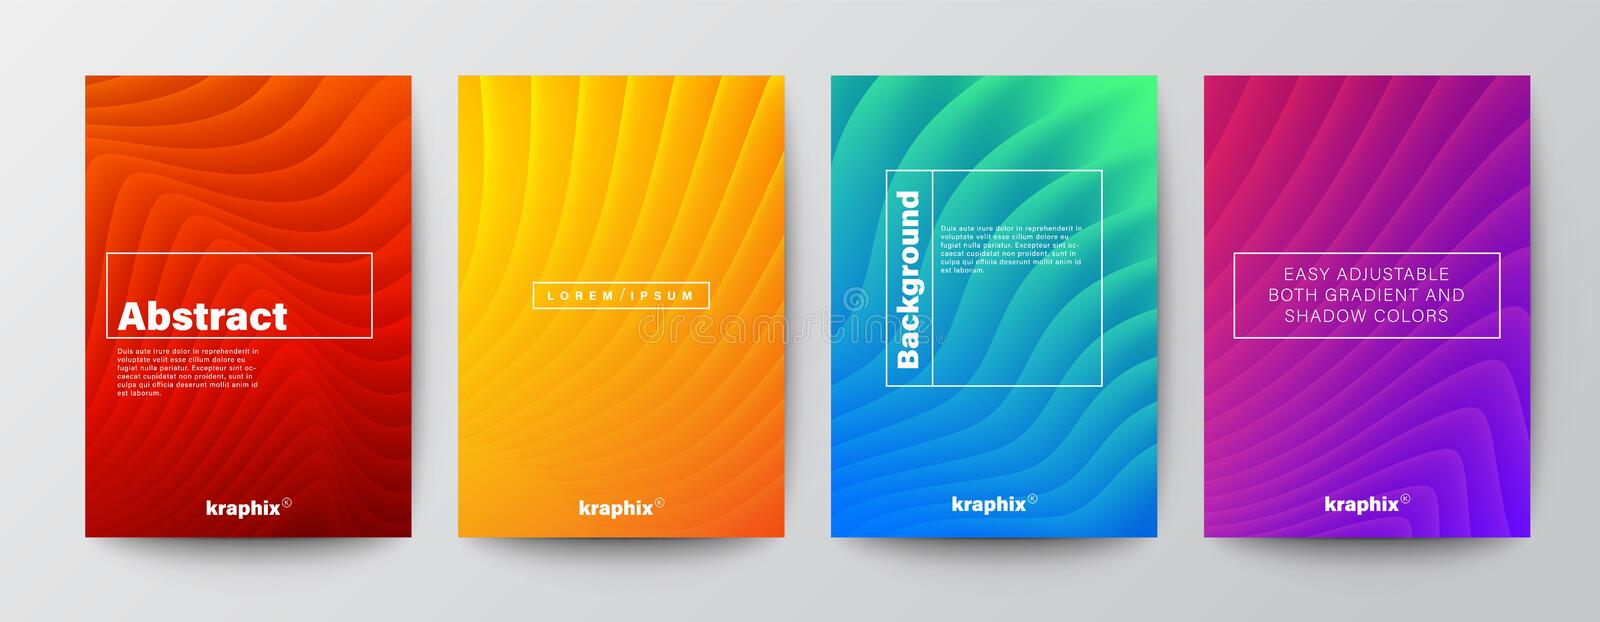 minimal abstract organic curved wave shape on vivid gradient colors background for Brochure, Flyer, Poster, leaflet, Book Cover stock illustration